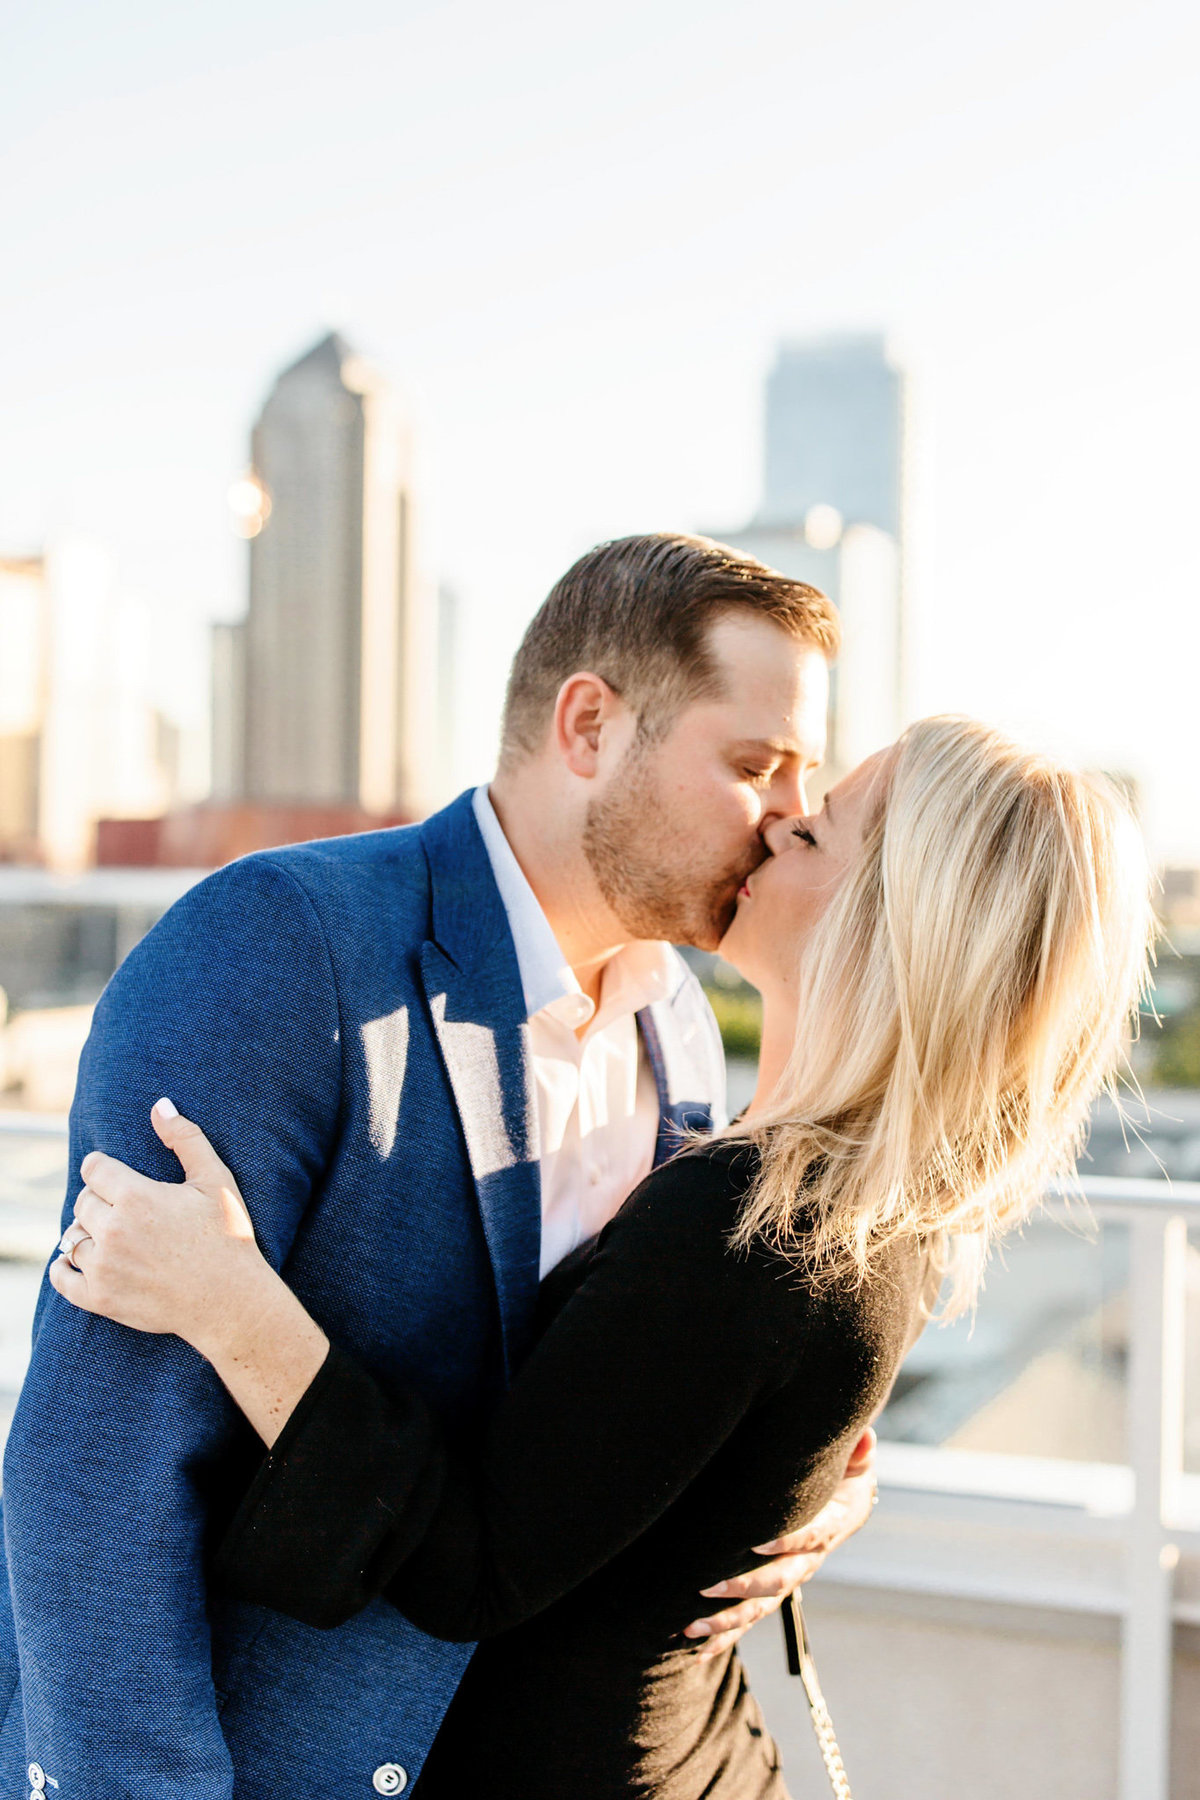 Eric & Megan - Downtown Dallas Rooftop Proposal & Engagement Session-45